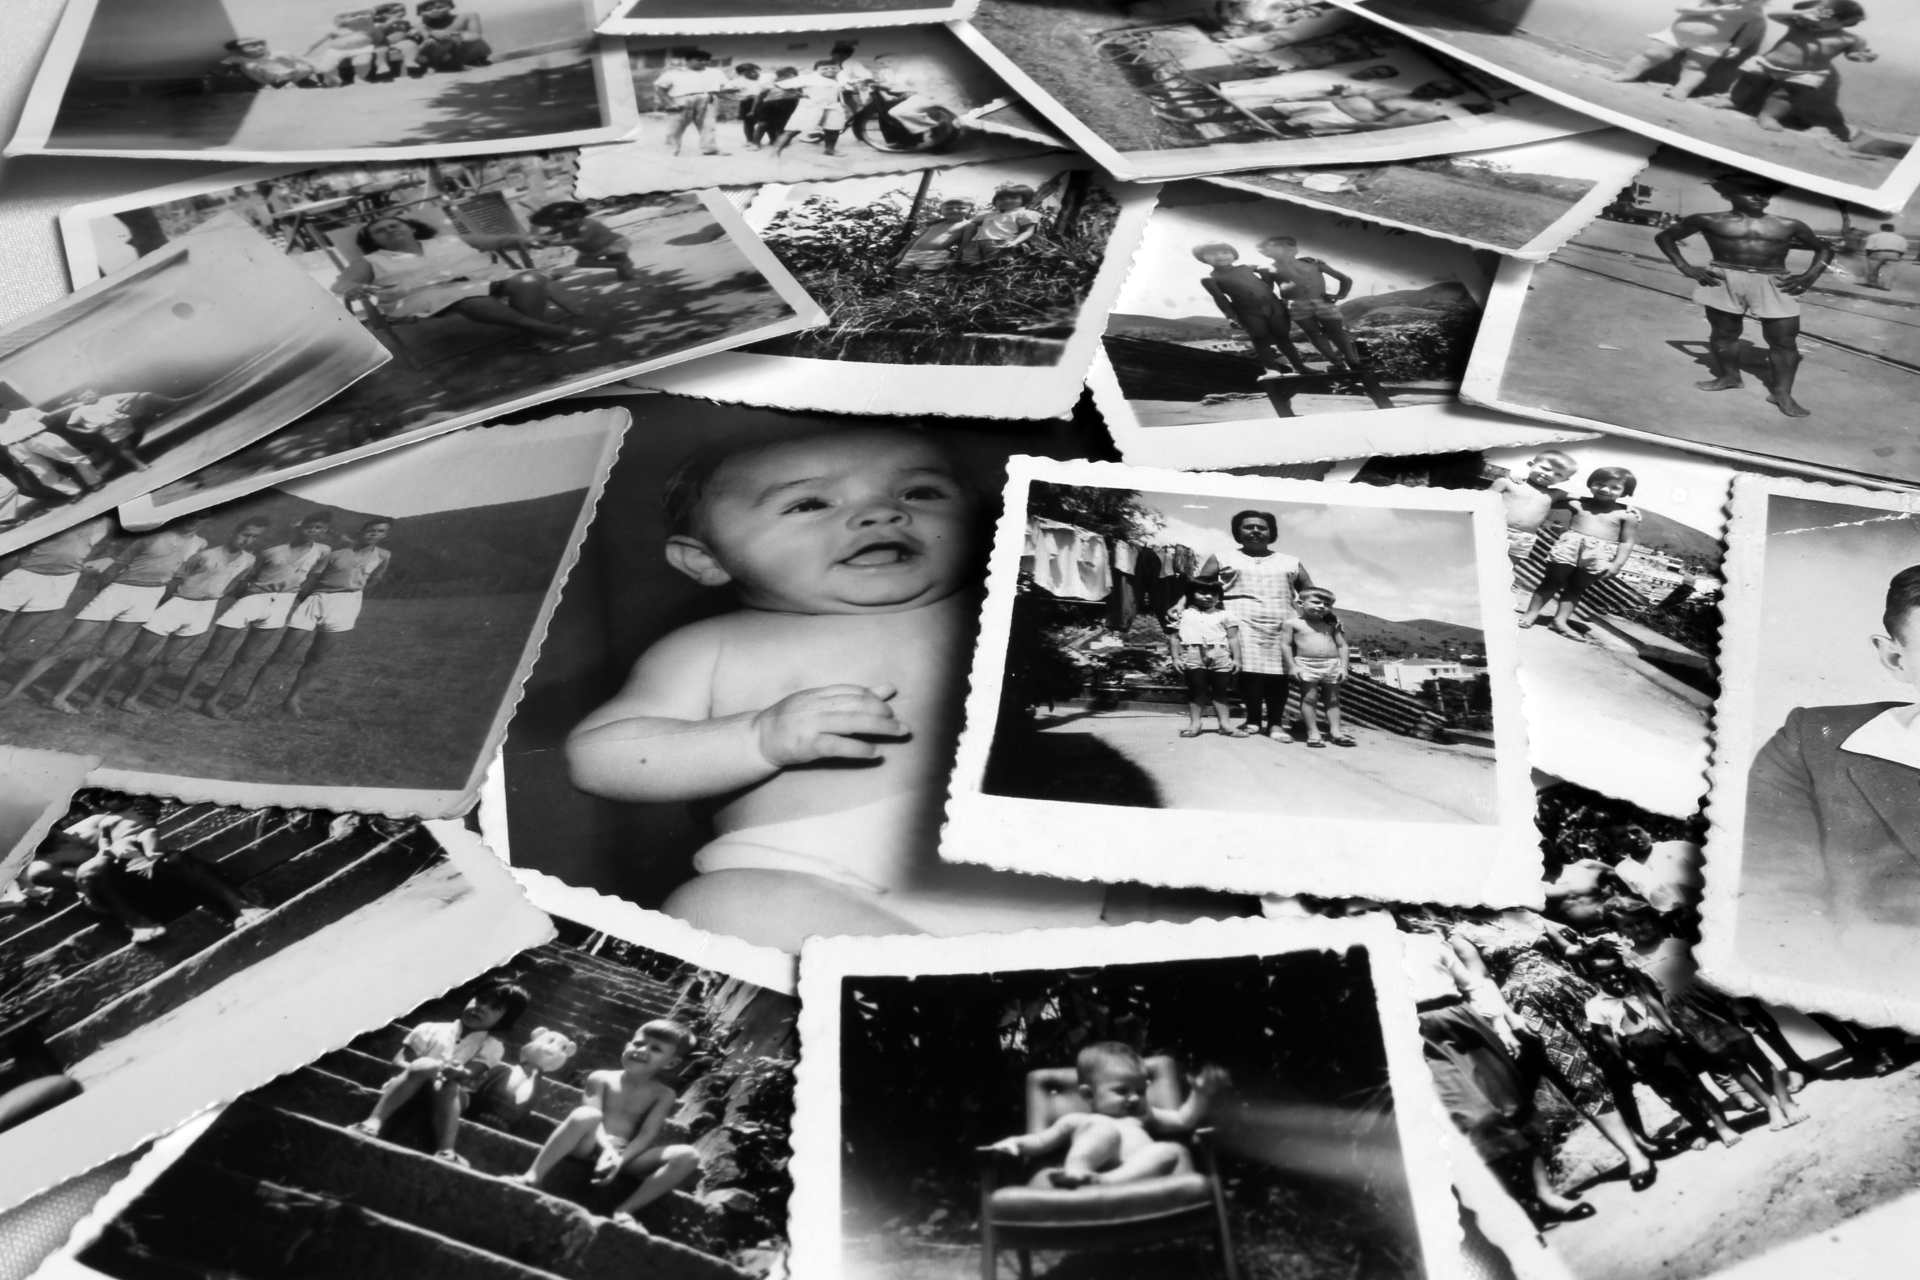 Collection of black and white photos memoir editing memoir editor memoir editing memoir editor personal story life stories